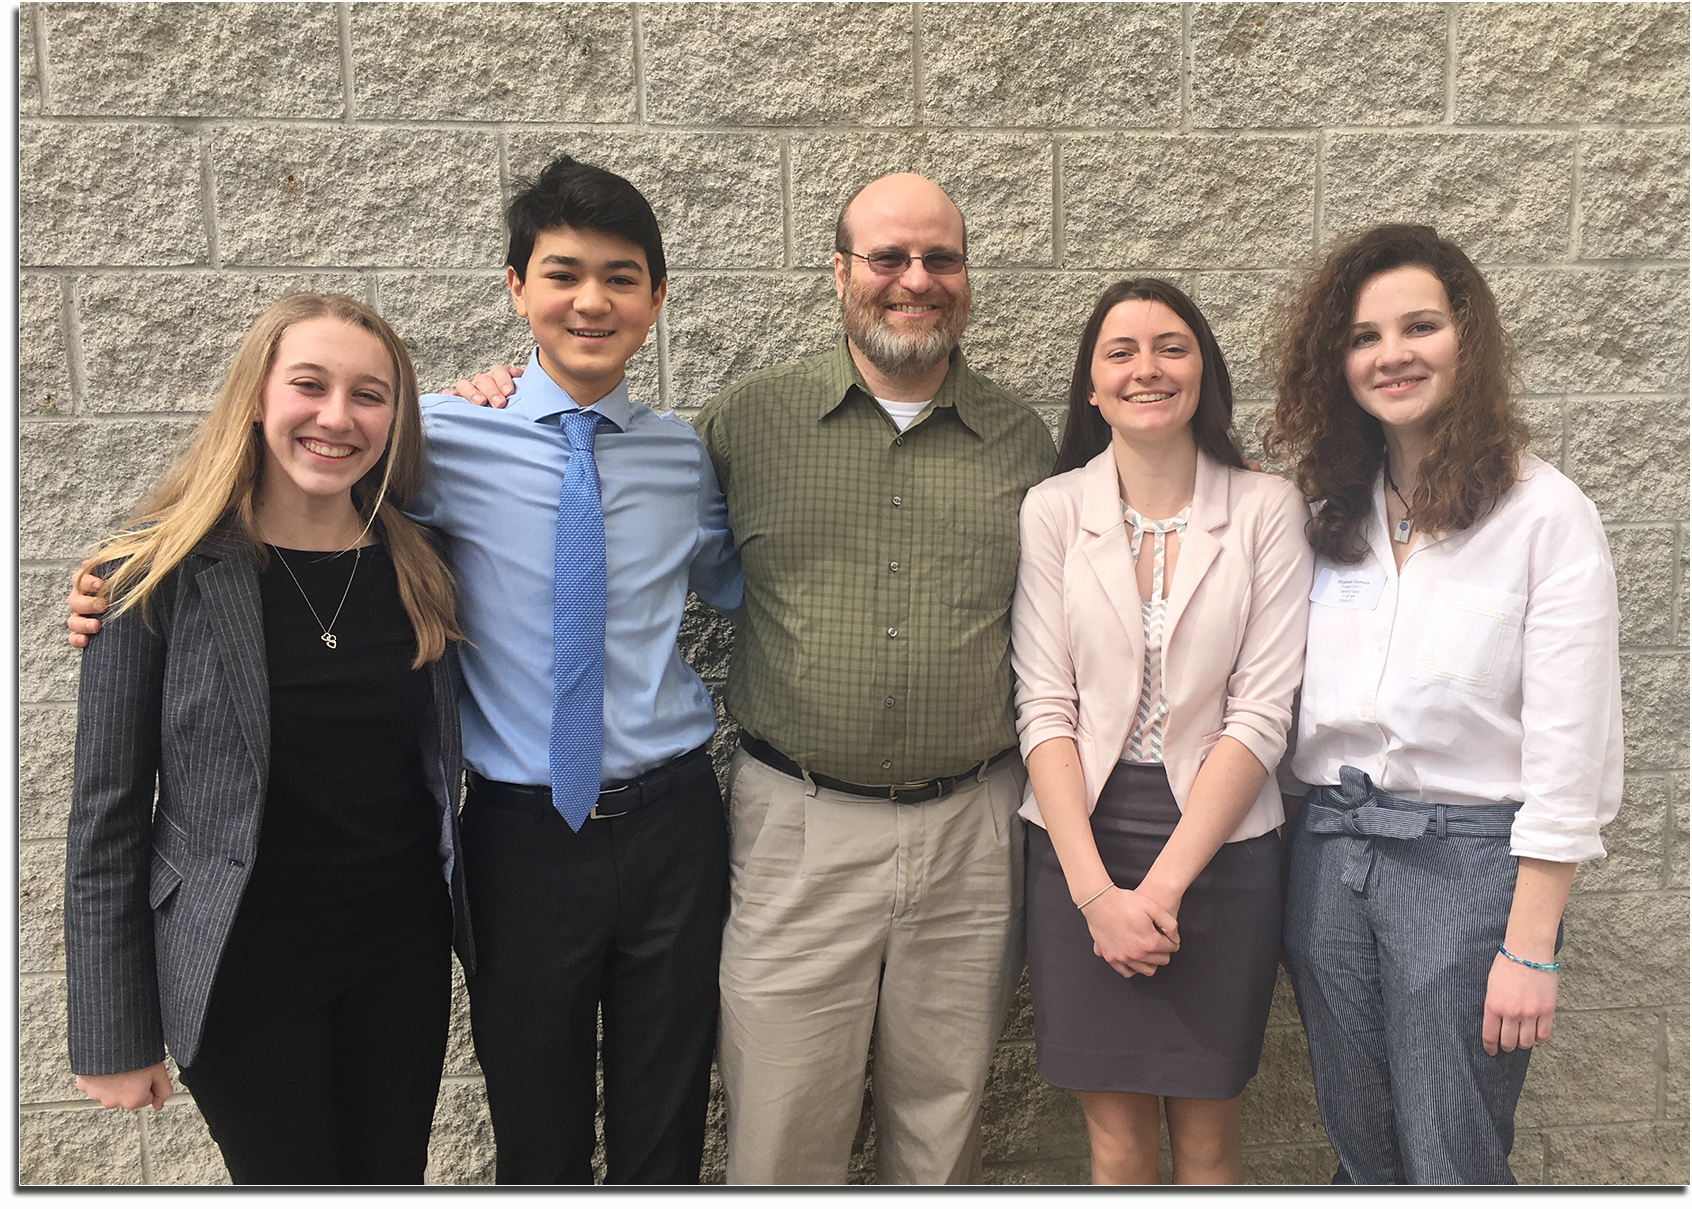 History Day competitors standing with Mr. Fetters.